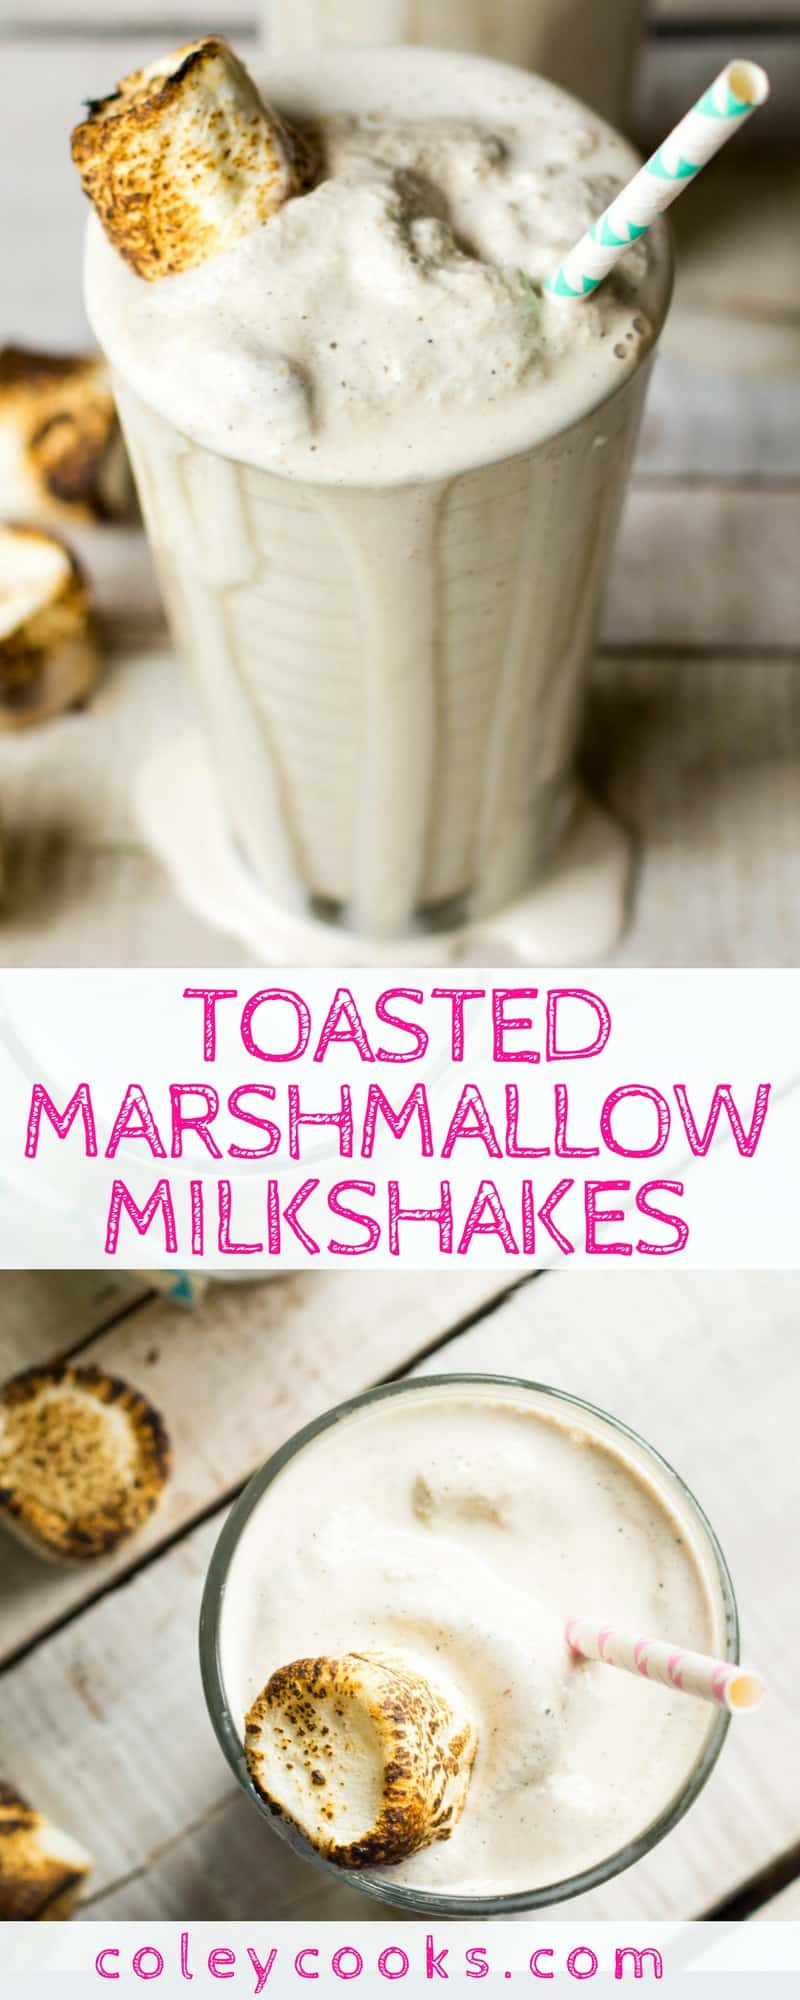 TOASTED MARSHMALLOW MILKSHAKES | Easy recipe for creamy toasted marshmallow milkshakes. So fun to make and only need 3 ingredients! #frozentreats | ColeyCooks.com